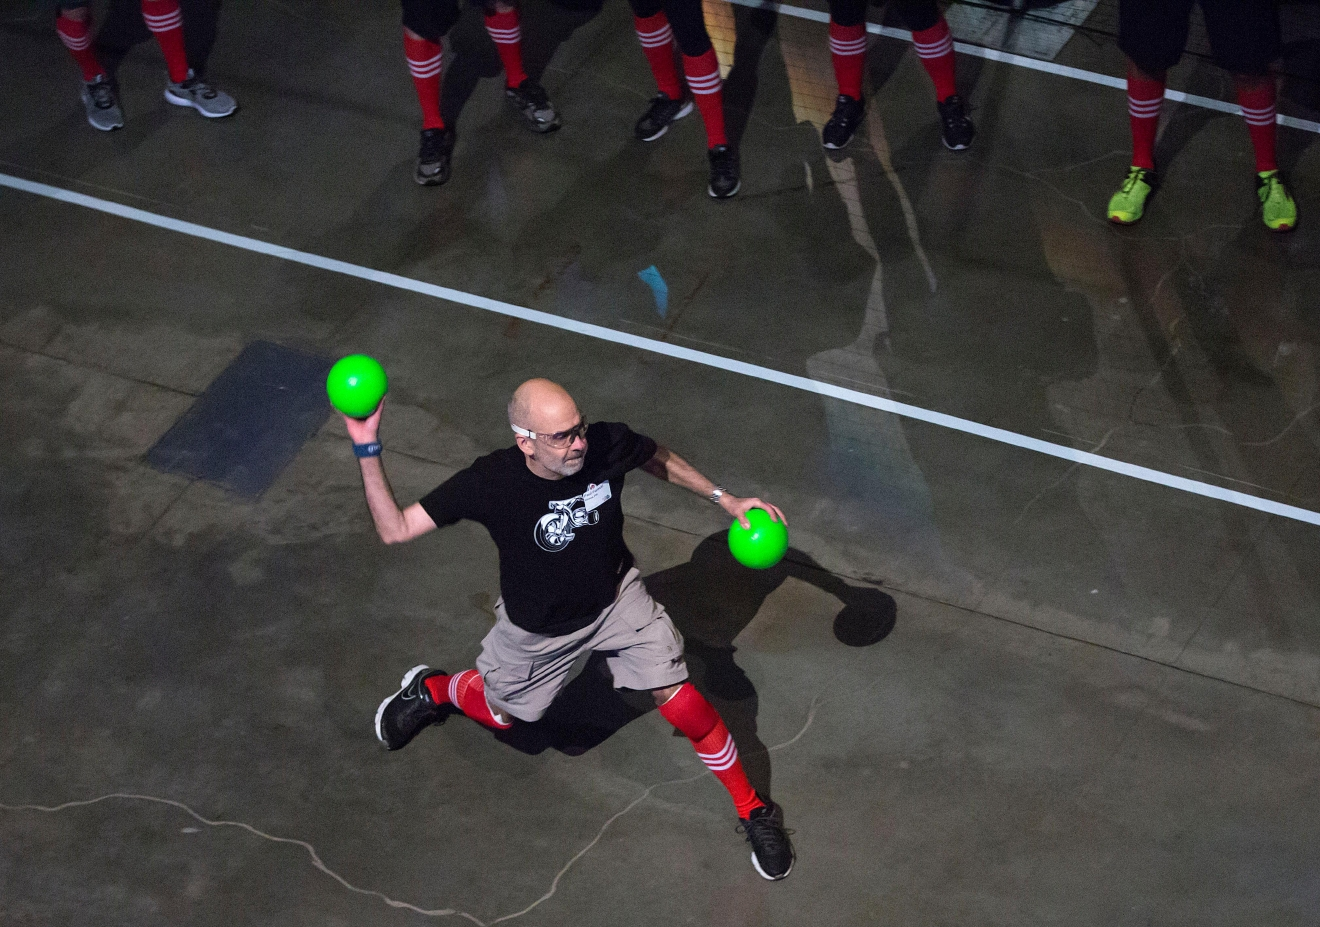 A participant takes aim during one of the dodgeball tournaments at the 6th annual Geekwire Bash at the CenturyLink Event Center. (Sy Bean / Seattle Refined)